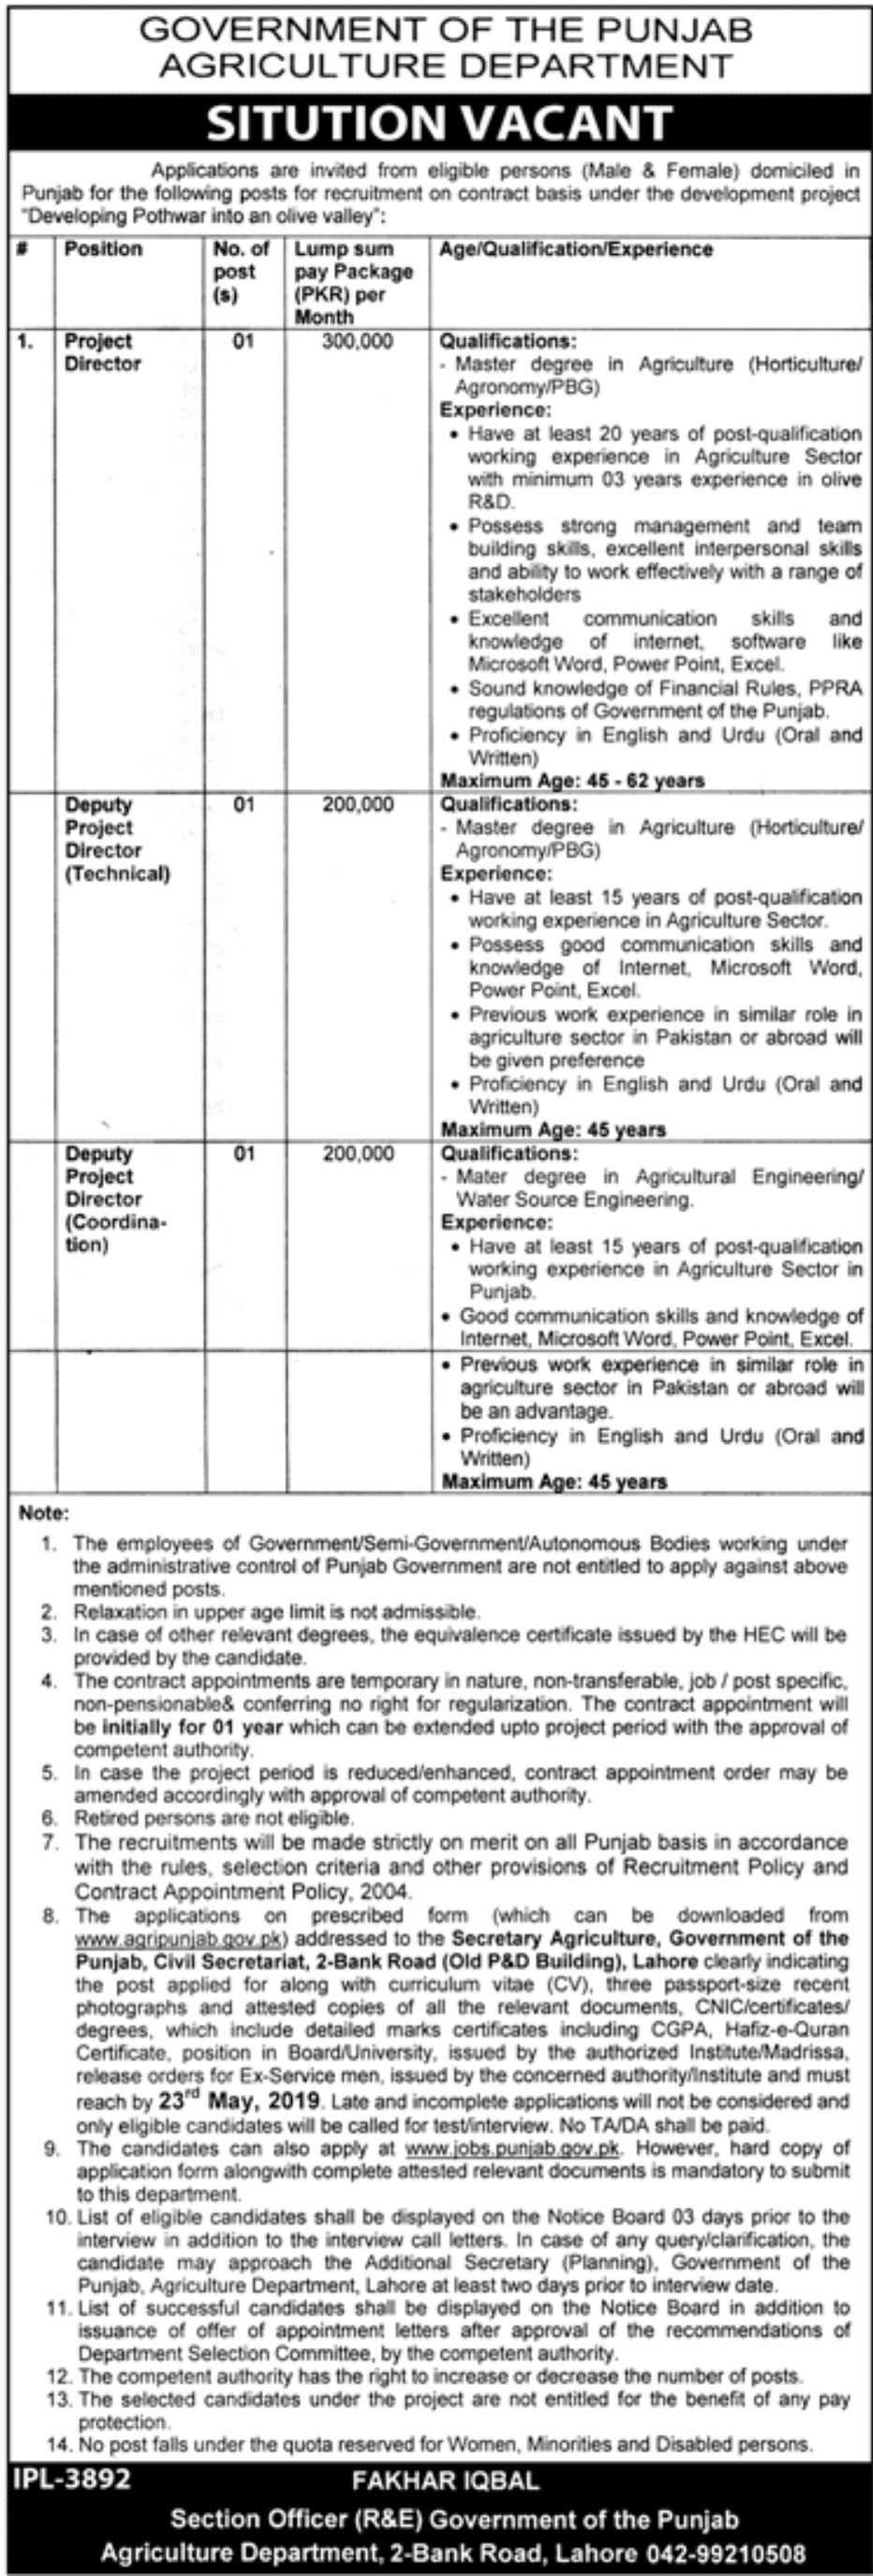 Agriculture Department Jobs 2019 Government of Punjab